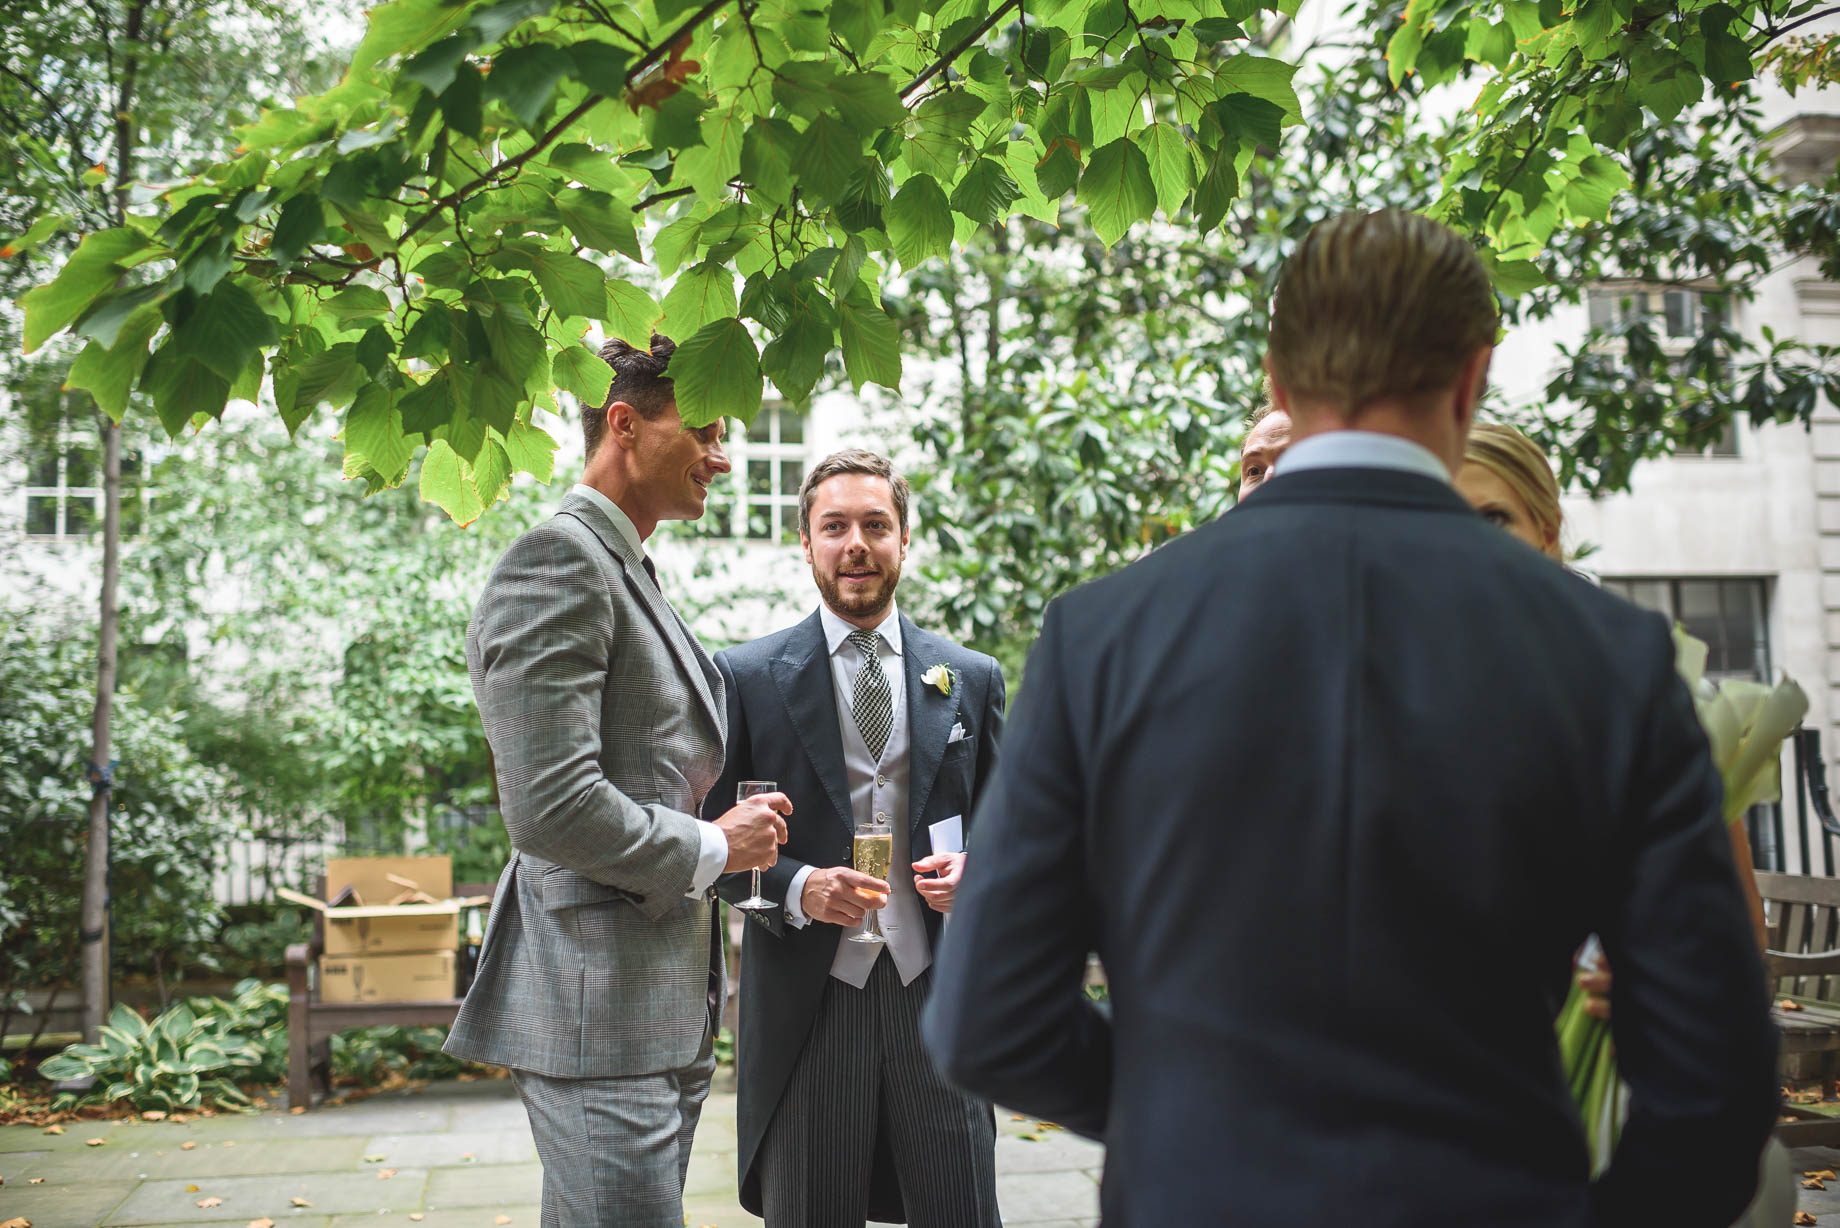 Shoreditch wedding photography - Guy Collier - Kat and Henry (95 of 200)